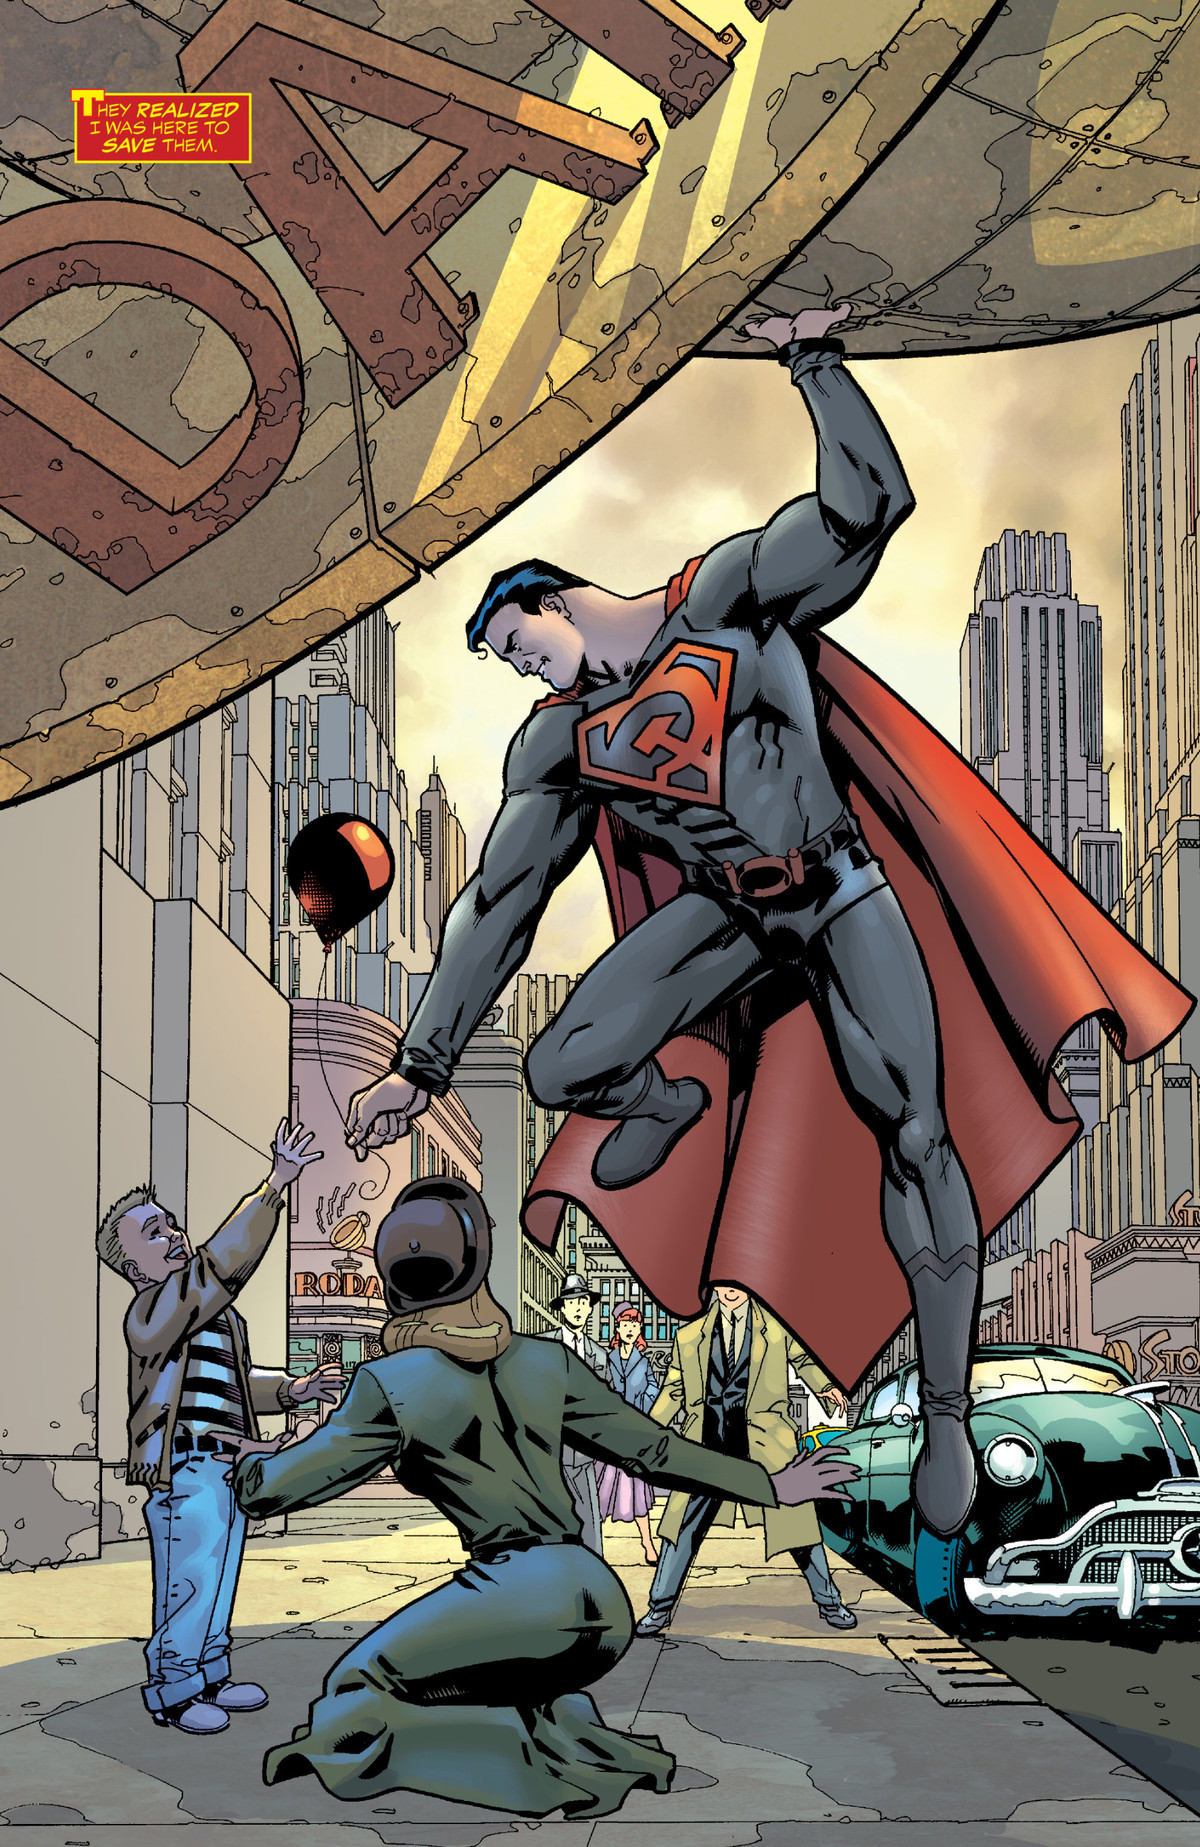 Superman, wearing the Soviet hammer and sickle instead of his S symbol, hands a balloon to a small boy, as the simultaneously saves him from the falling dome of the Daily Planet in Superman: Red Son, DC Comics (2003).